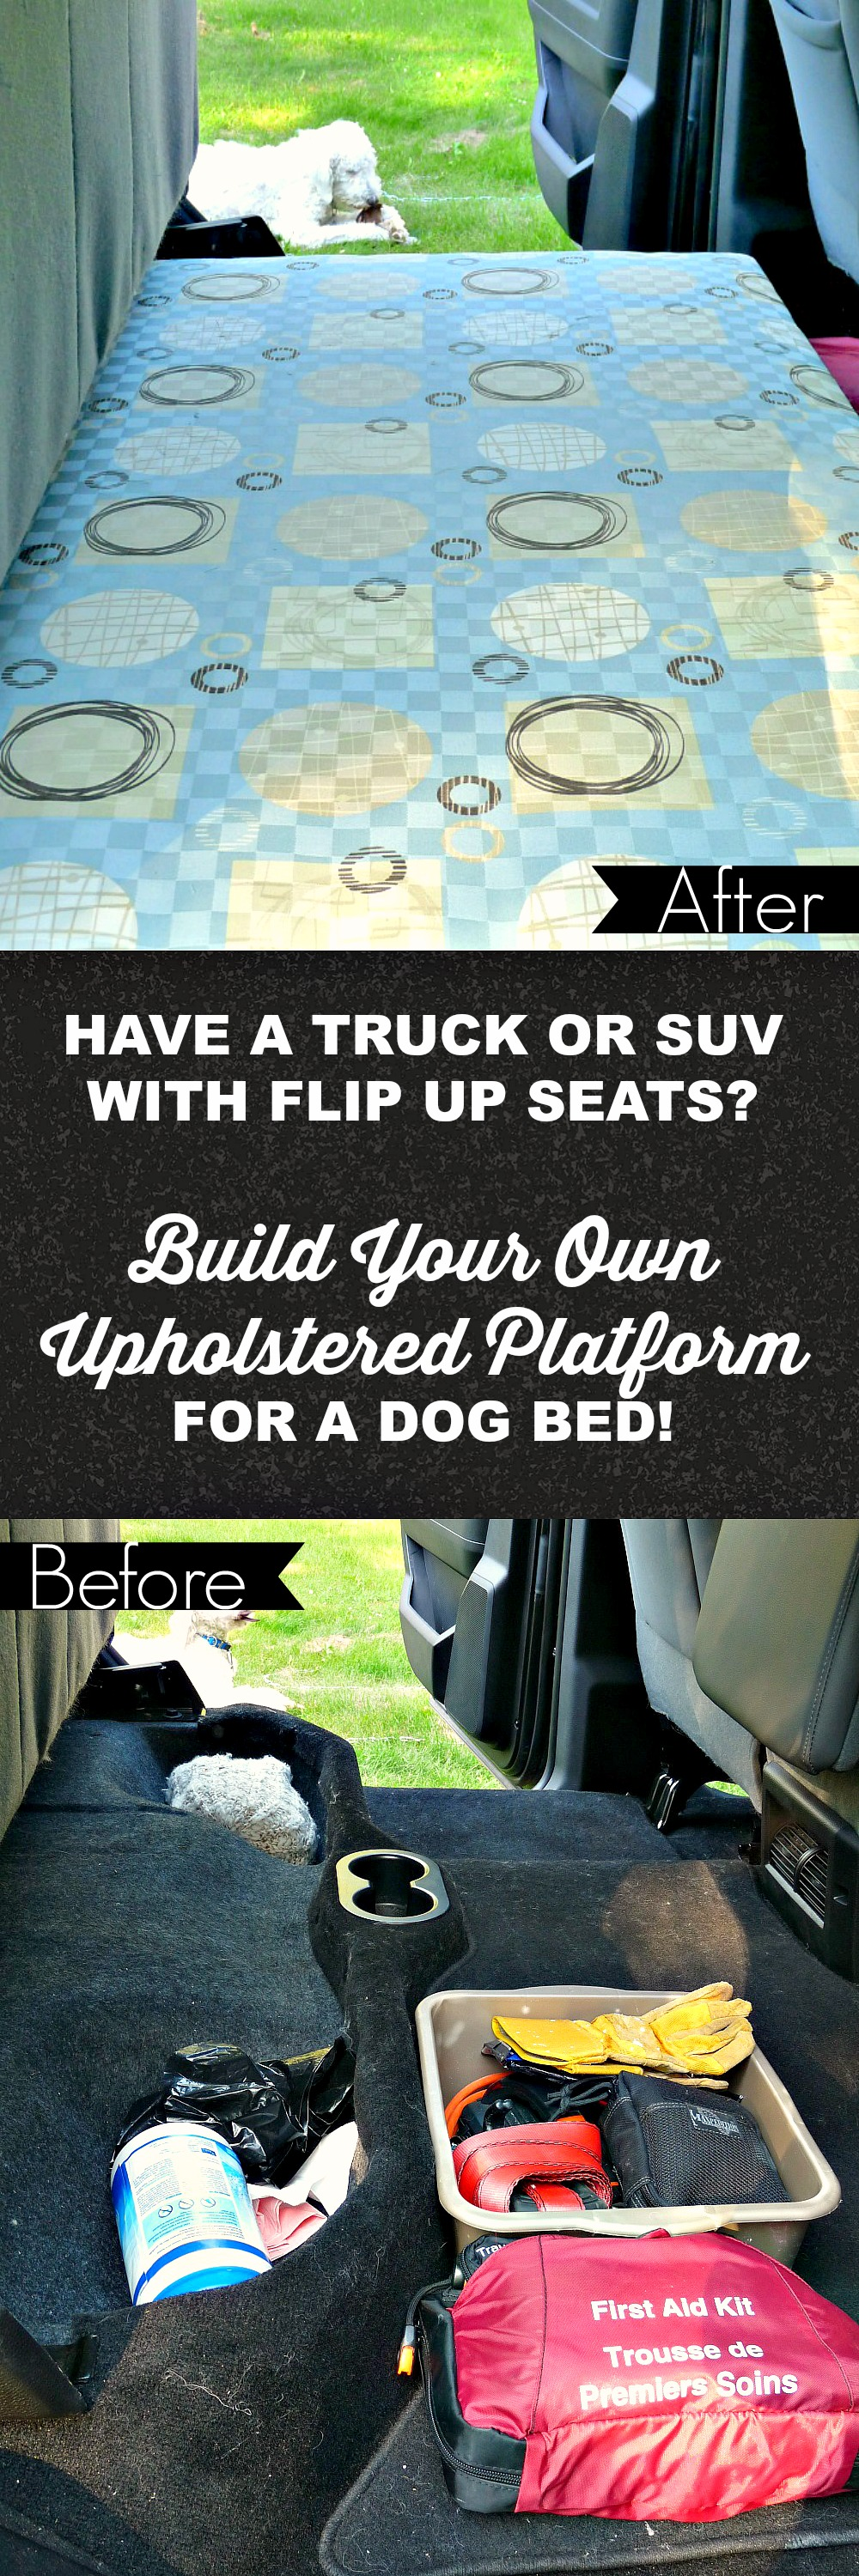 DIY Truck Cab Platform to Level Cab Floor When Seats Flipped Up